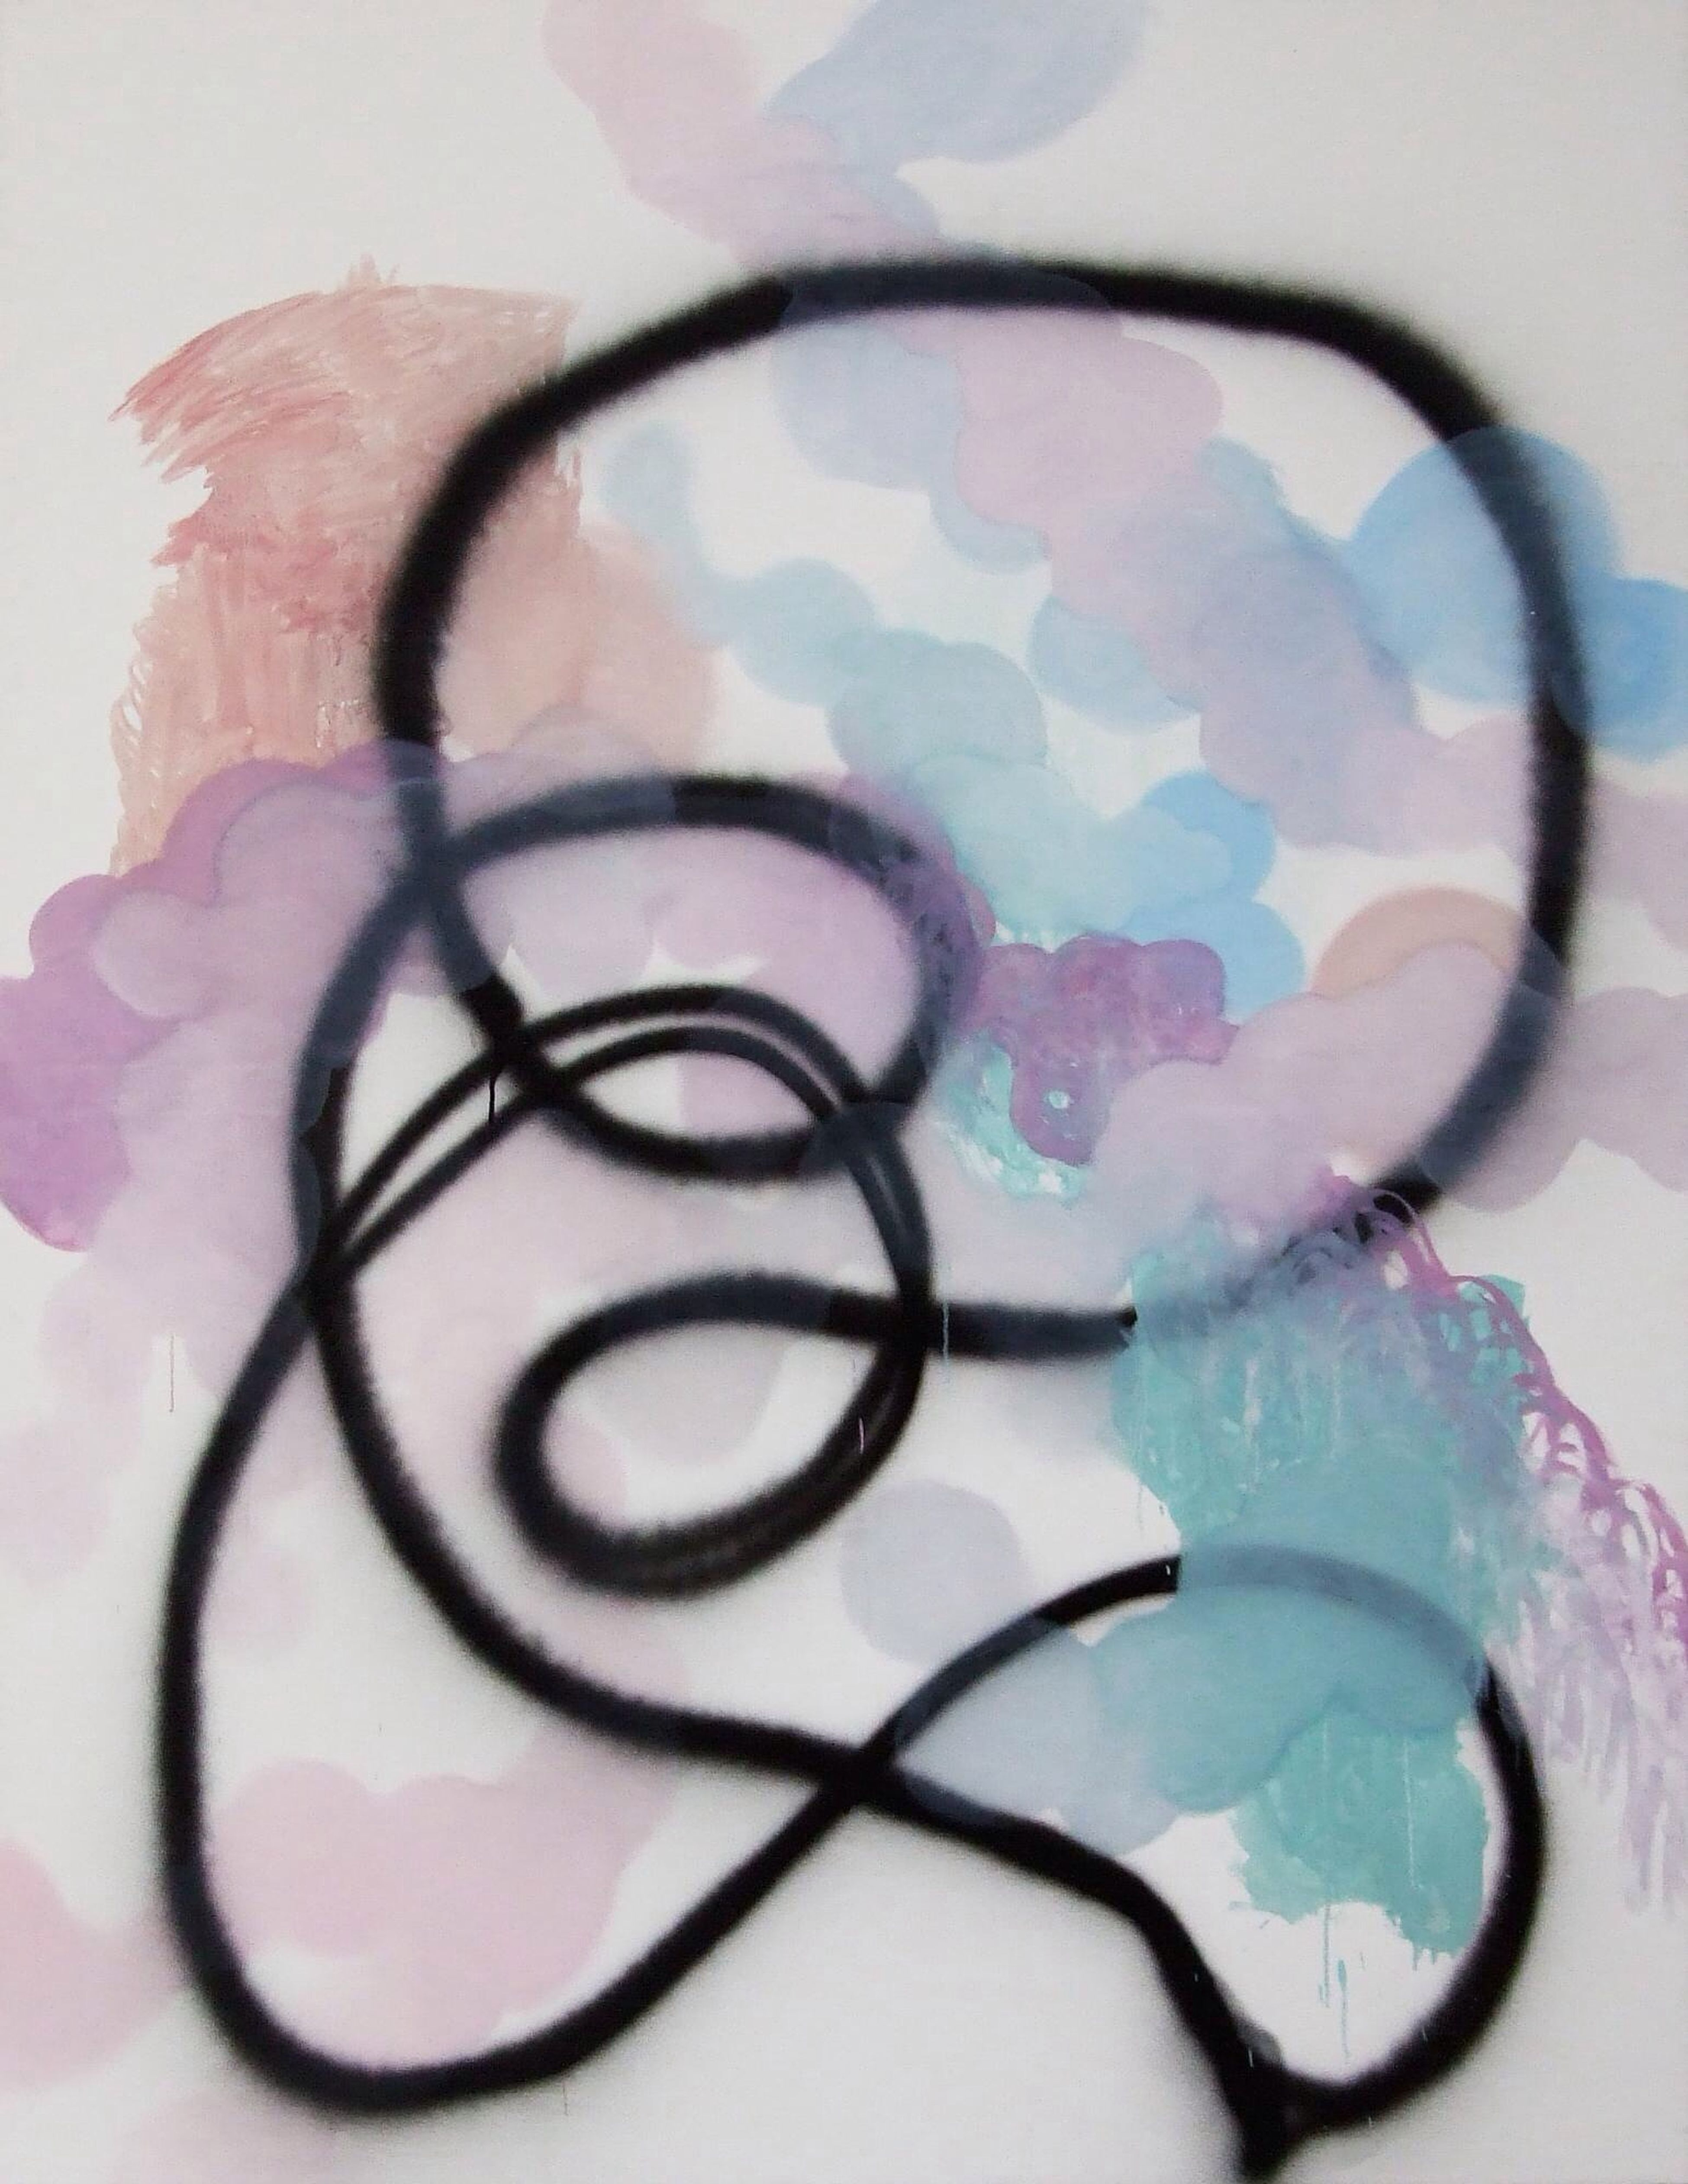 Anabel Leiner- Even if your voice shakes Art Abstract Hamburg Veerkant http://goo.gl/z1uDK8